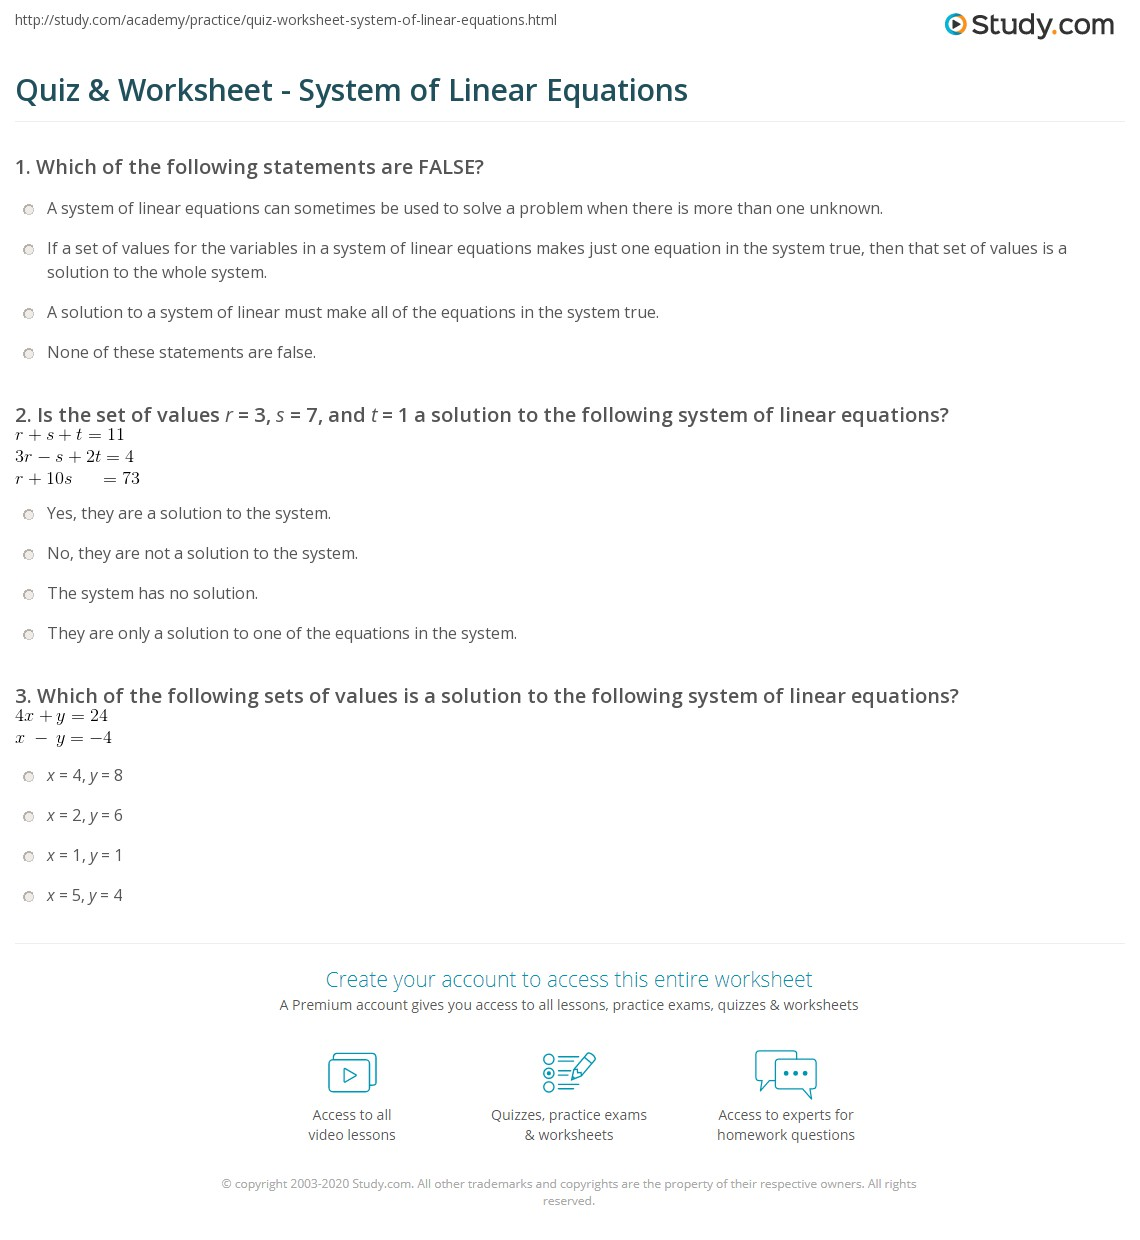 quiz & worksheet - system of linear equations | study